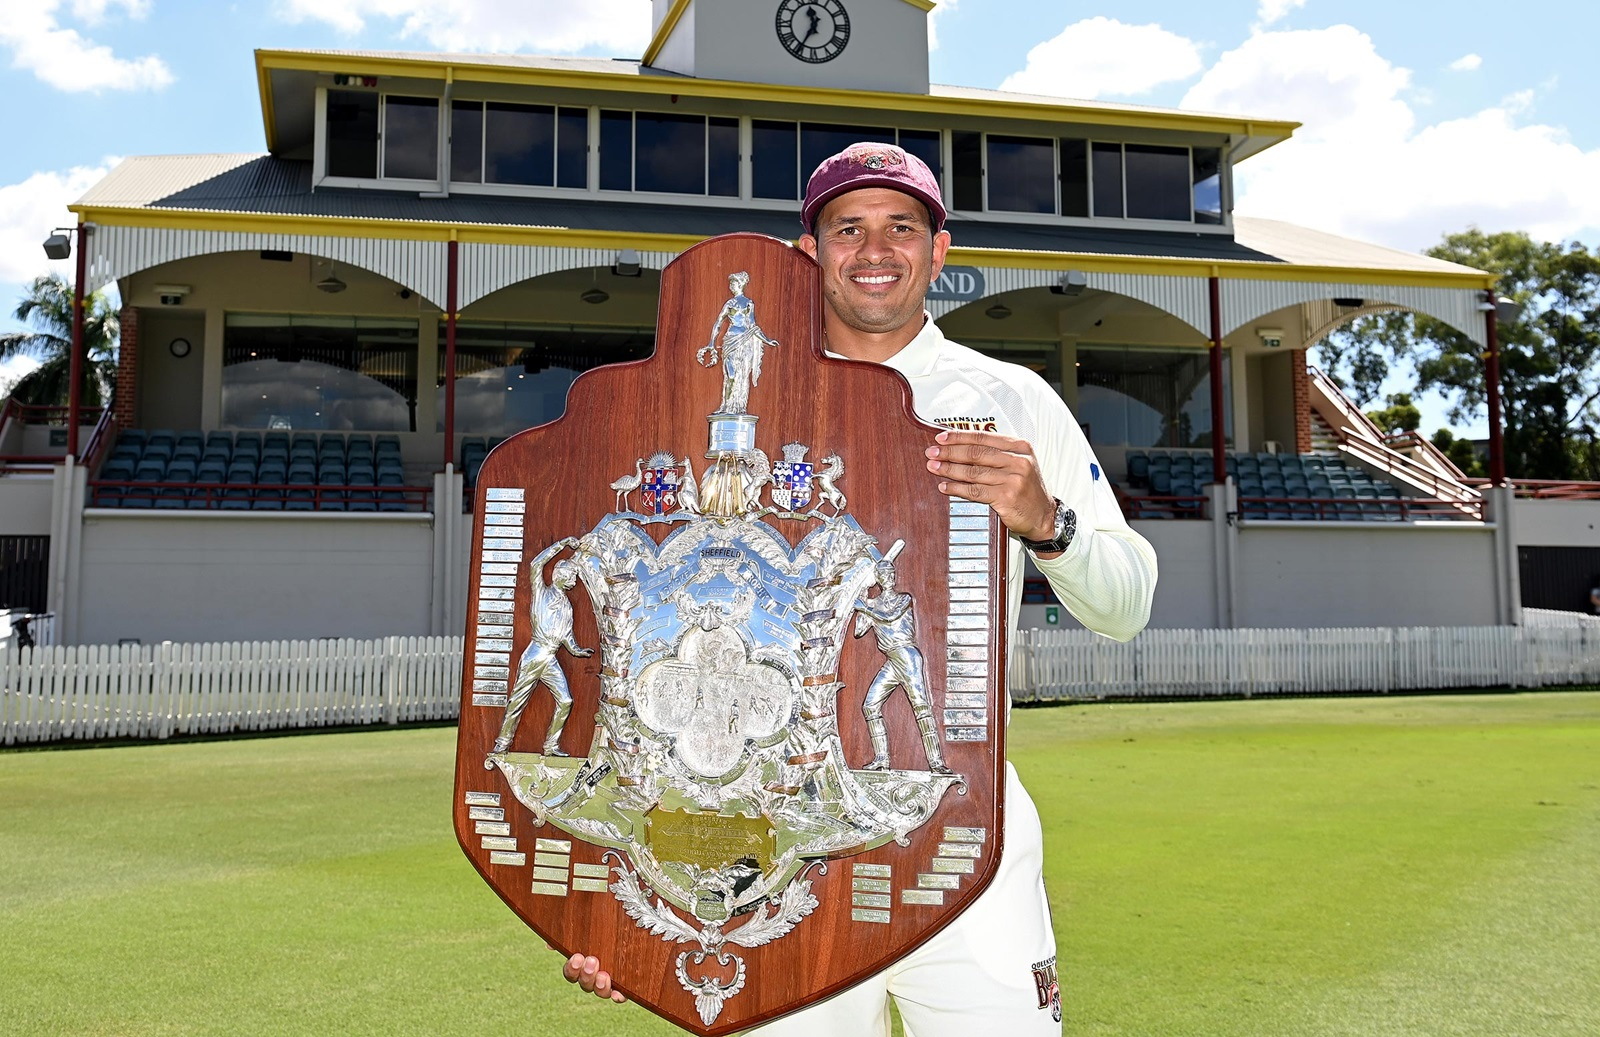 Usman Khwaja With Sheffield Shield 2020-21 Trophy